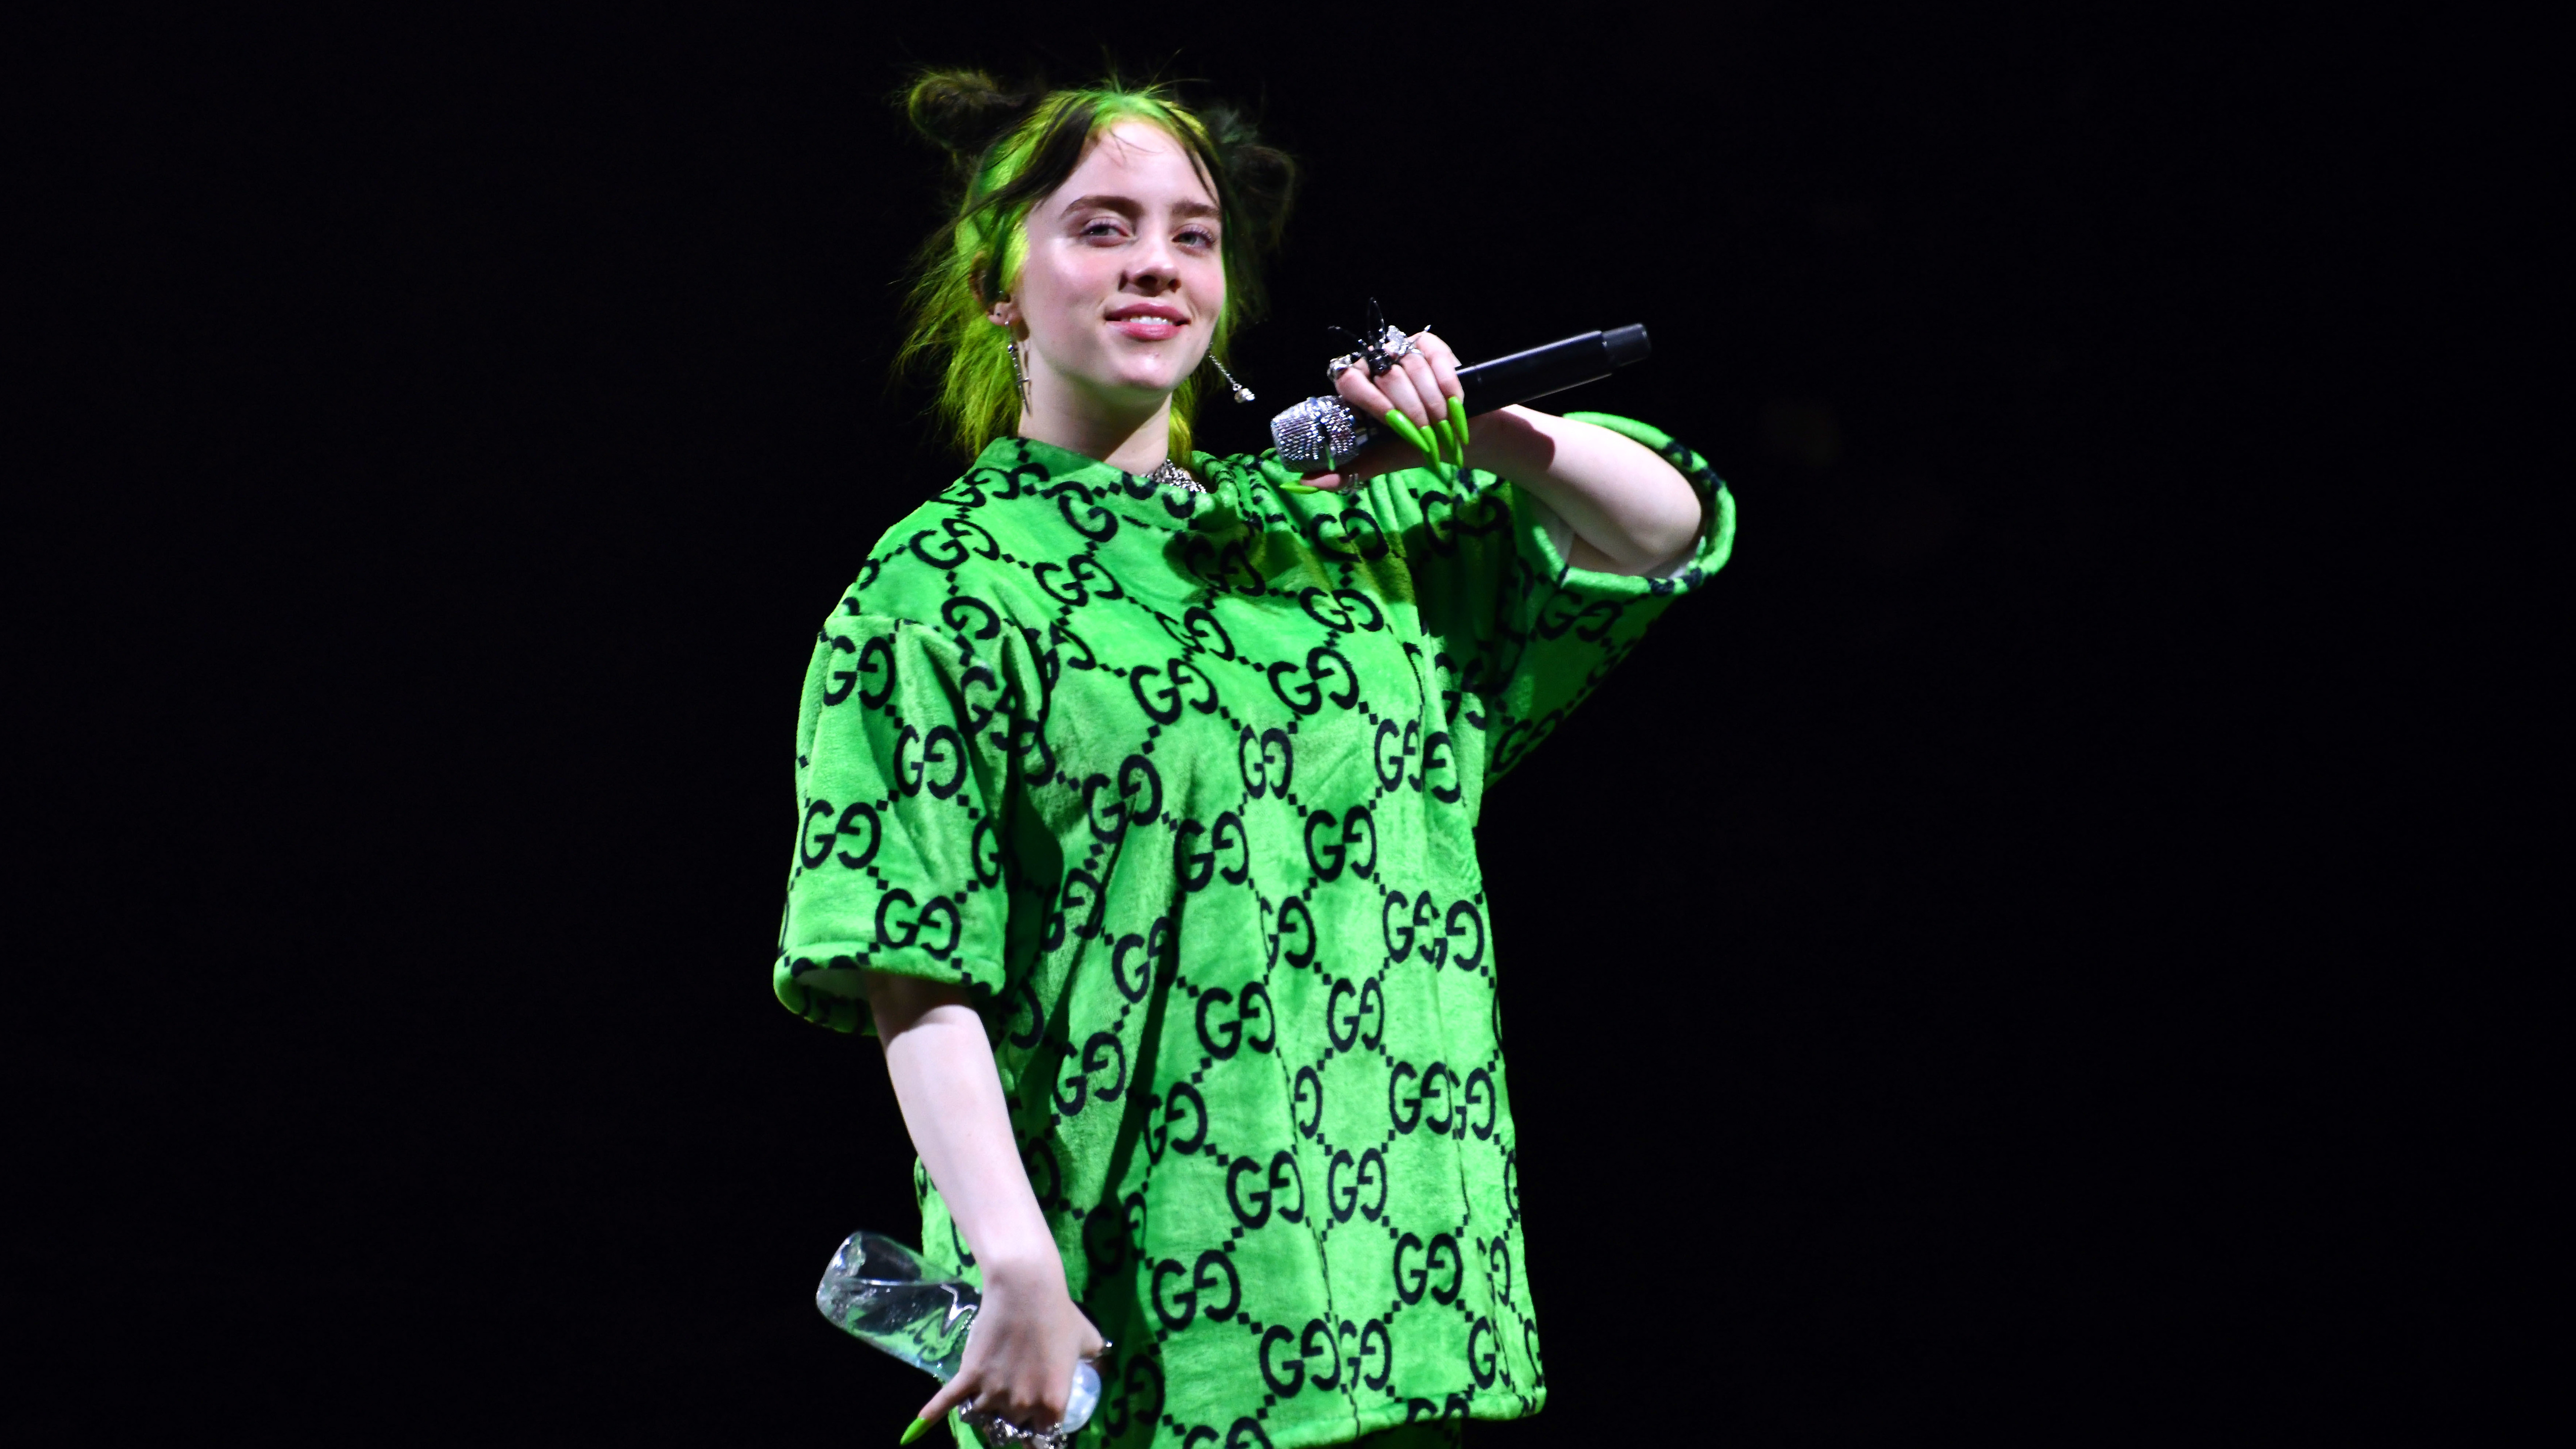 Billie Eilish's 'Bad Guy' Is The New No. 1 Song On The Billboard Hot 100